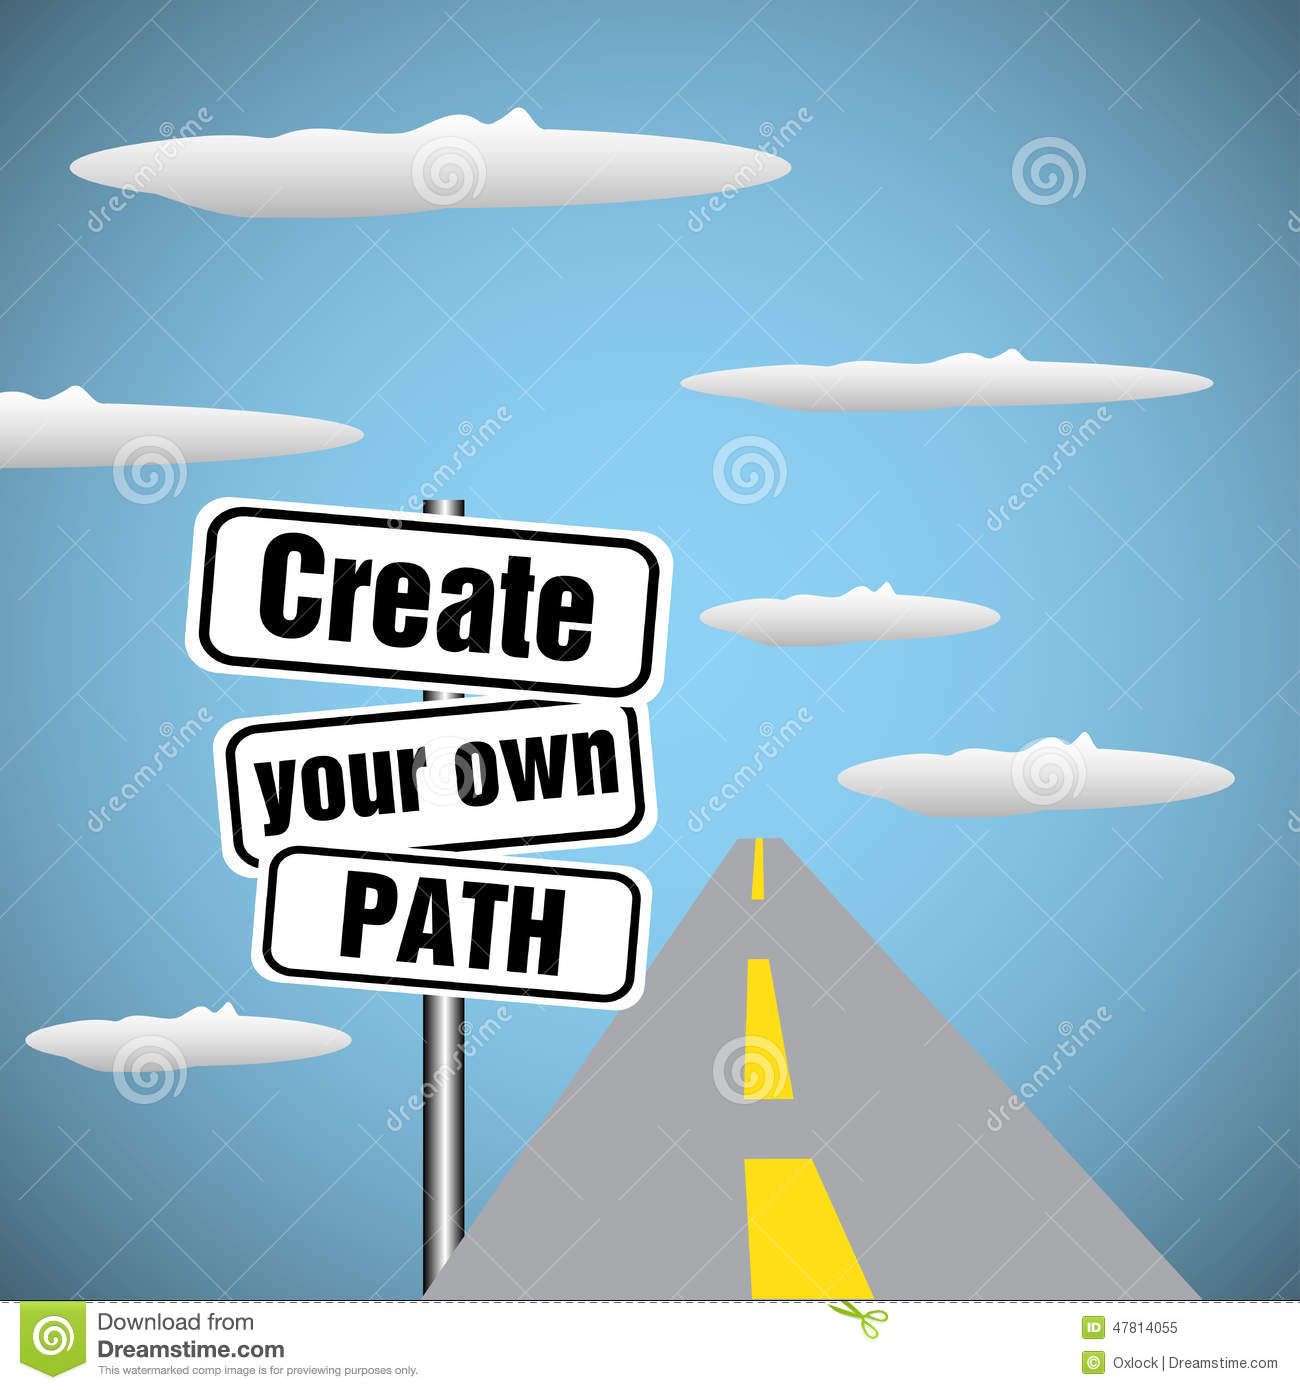 Create Your Own Path Stock Vector Image 47814055